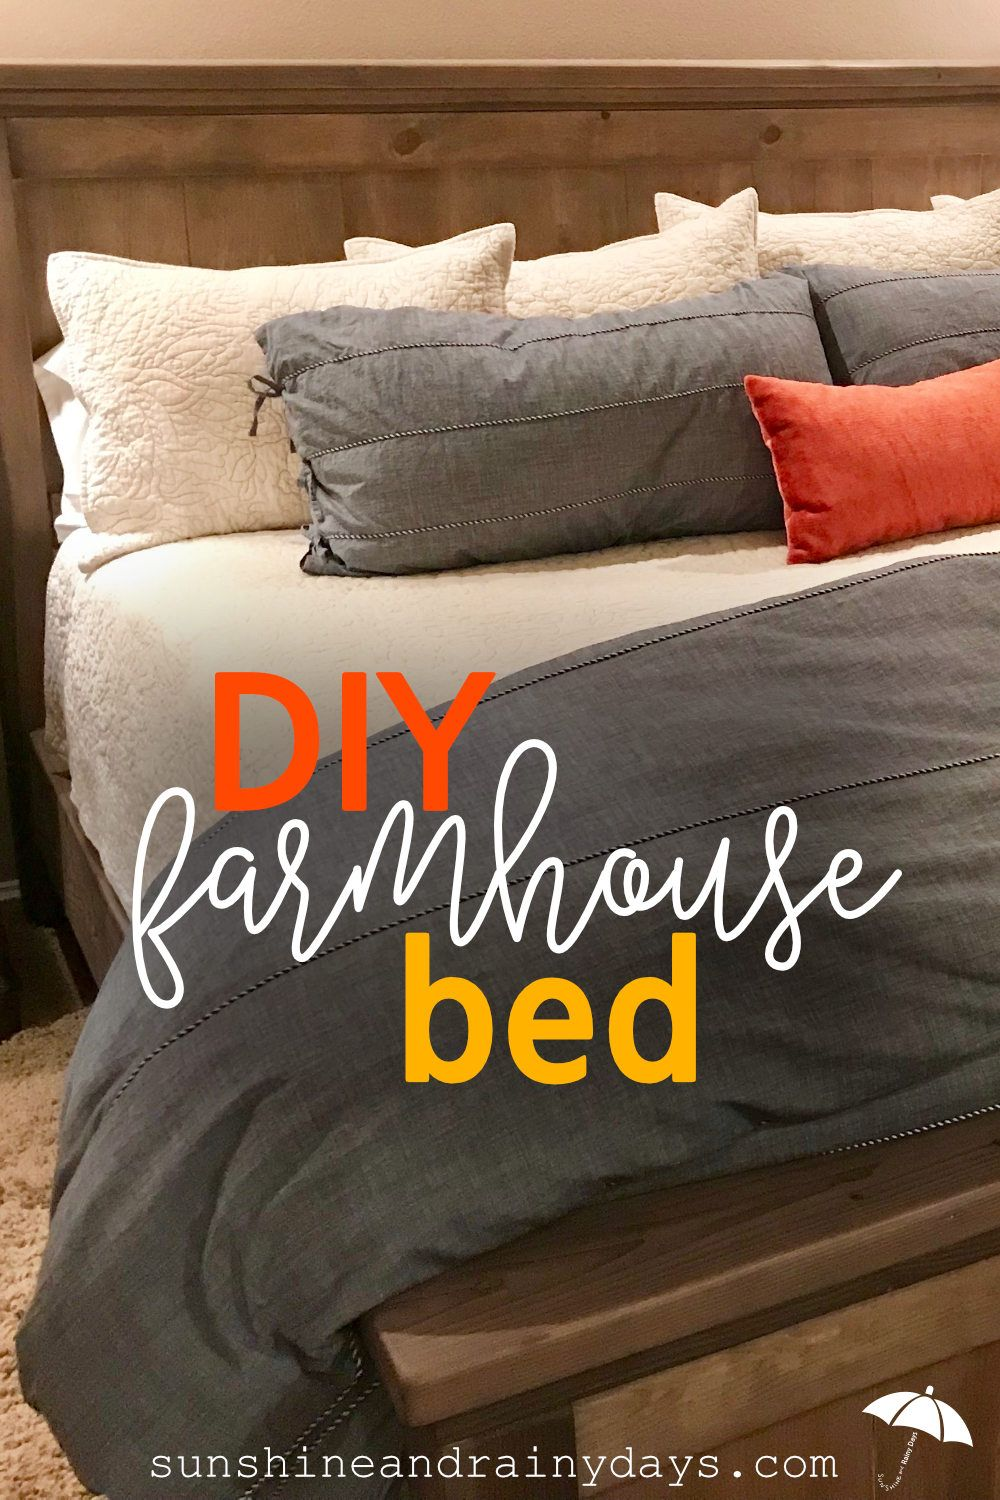 Diy King Size Farmhouse Bed In 2020 Farmhouse Bedding Diy Farmhouse Bed Bed